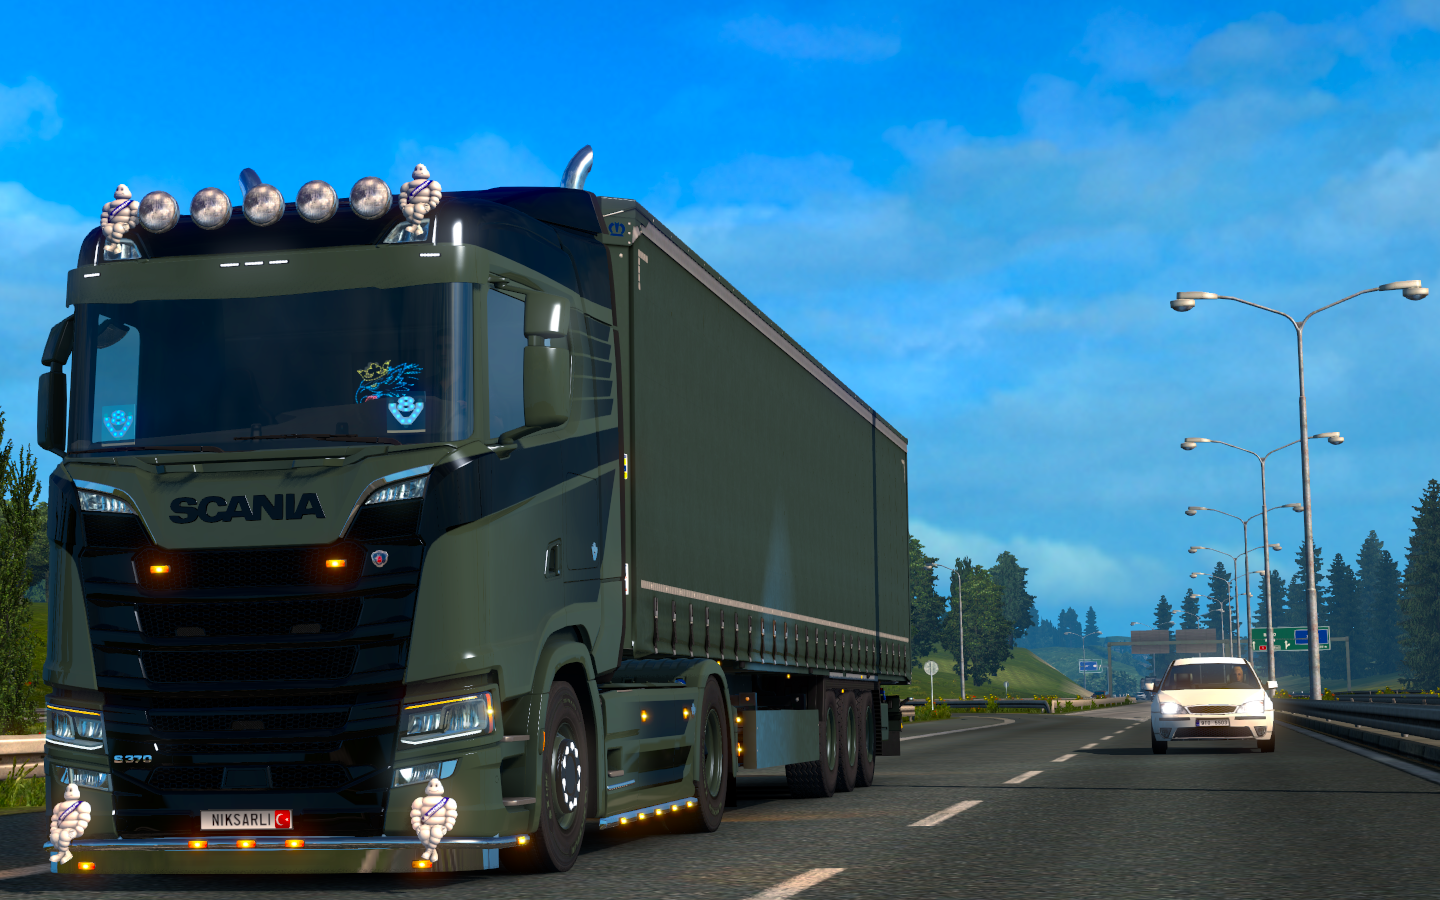 ets2_20190610_233502_00.png